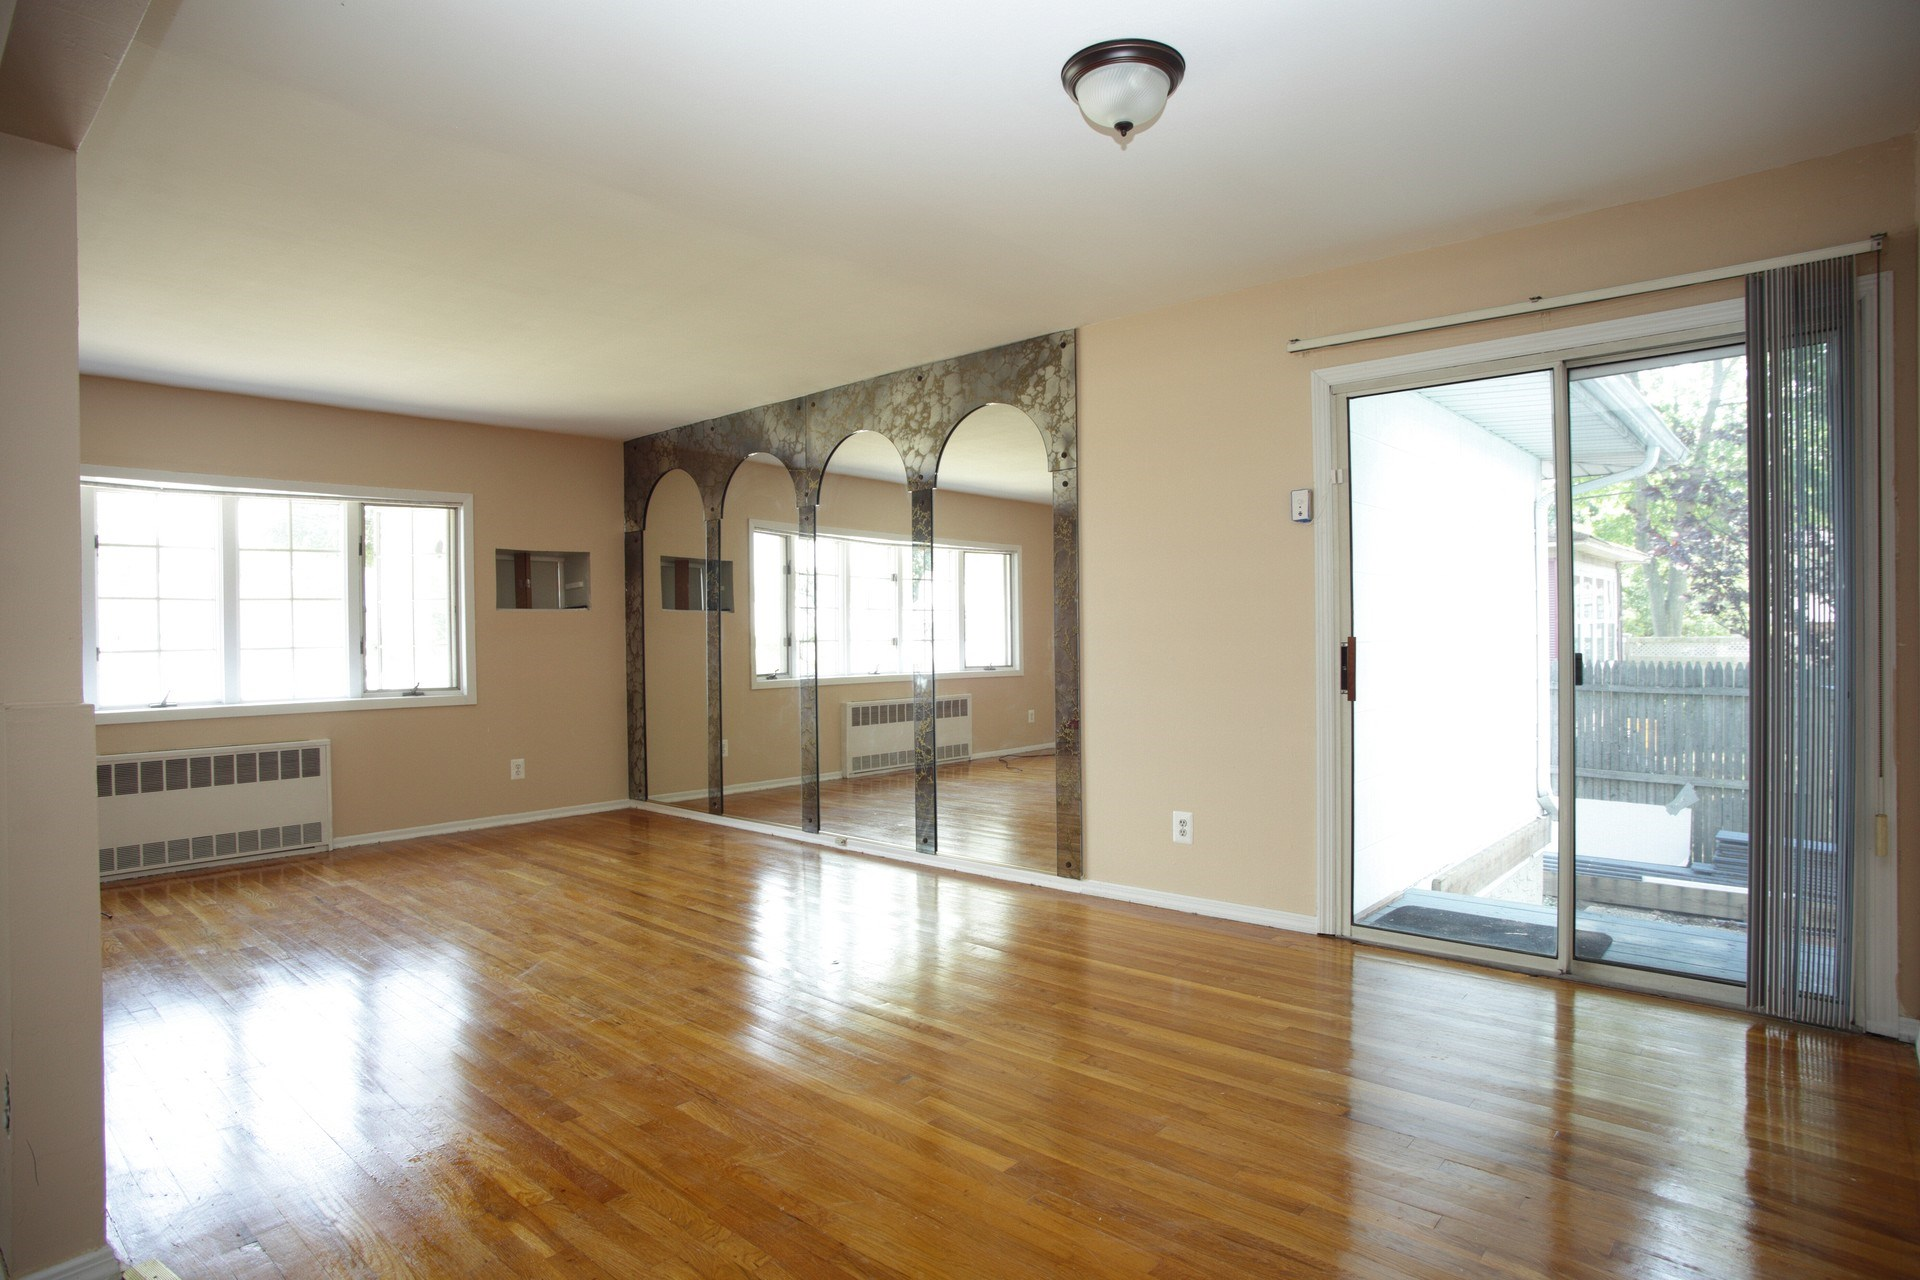 Rooms For Rent Hicksville Ny Apartments House Commercial Space